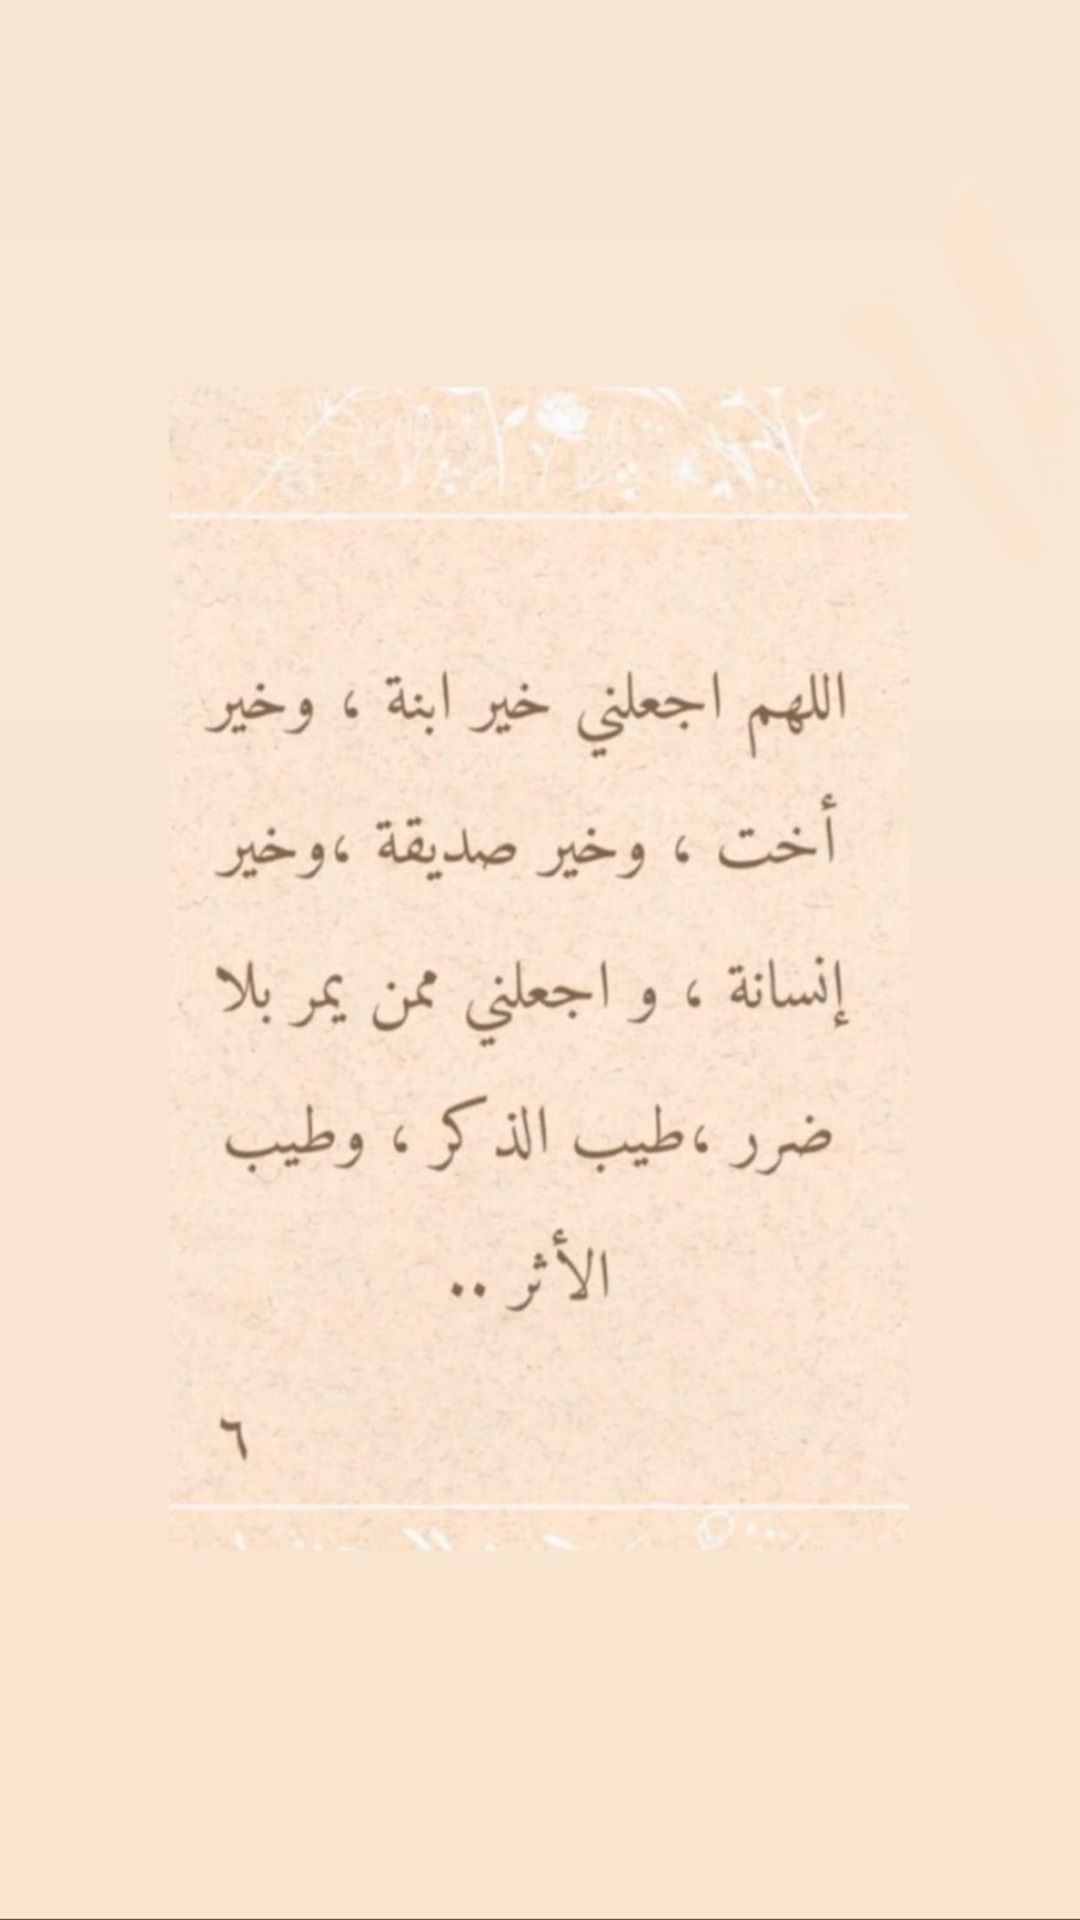 Pin By Wasn On Wasann Arabic Tattoo Quotes Words Quotes Love Quotes Wallpaper